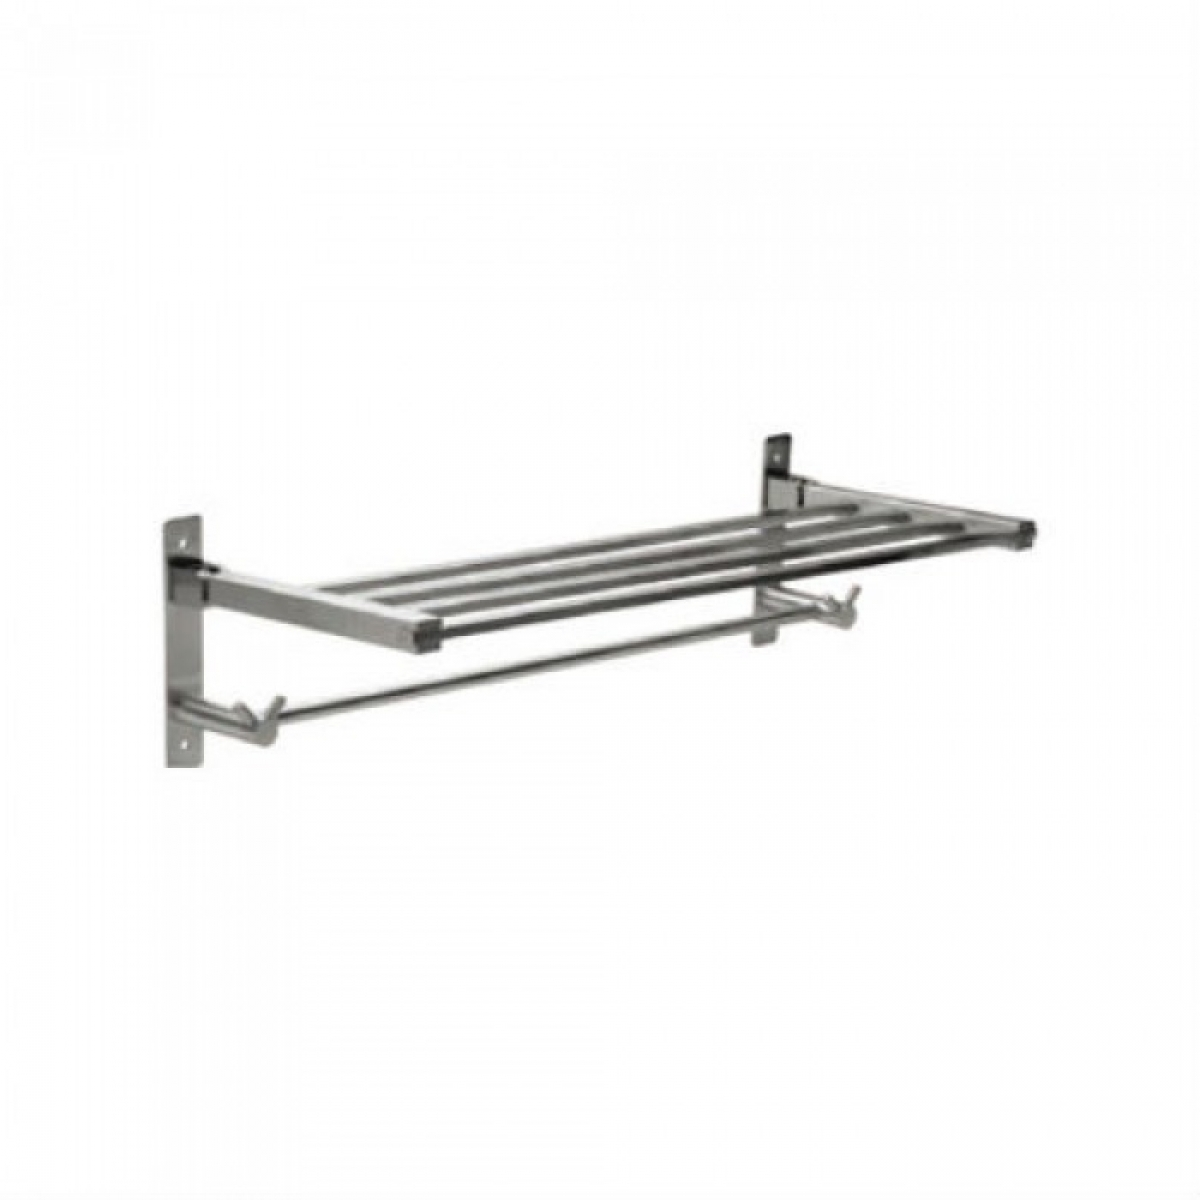 Aimer Amba Double Tower Bar 600mm L Ts Bathroom